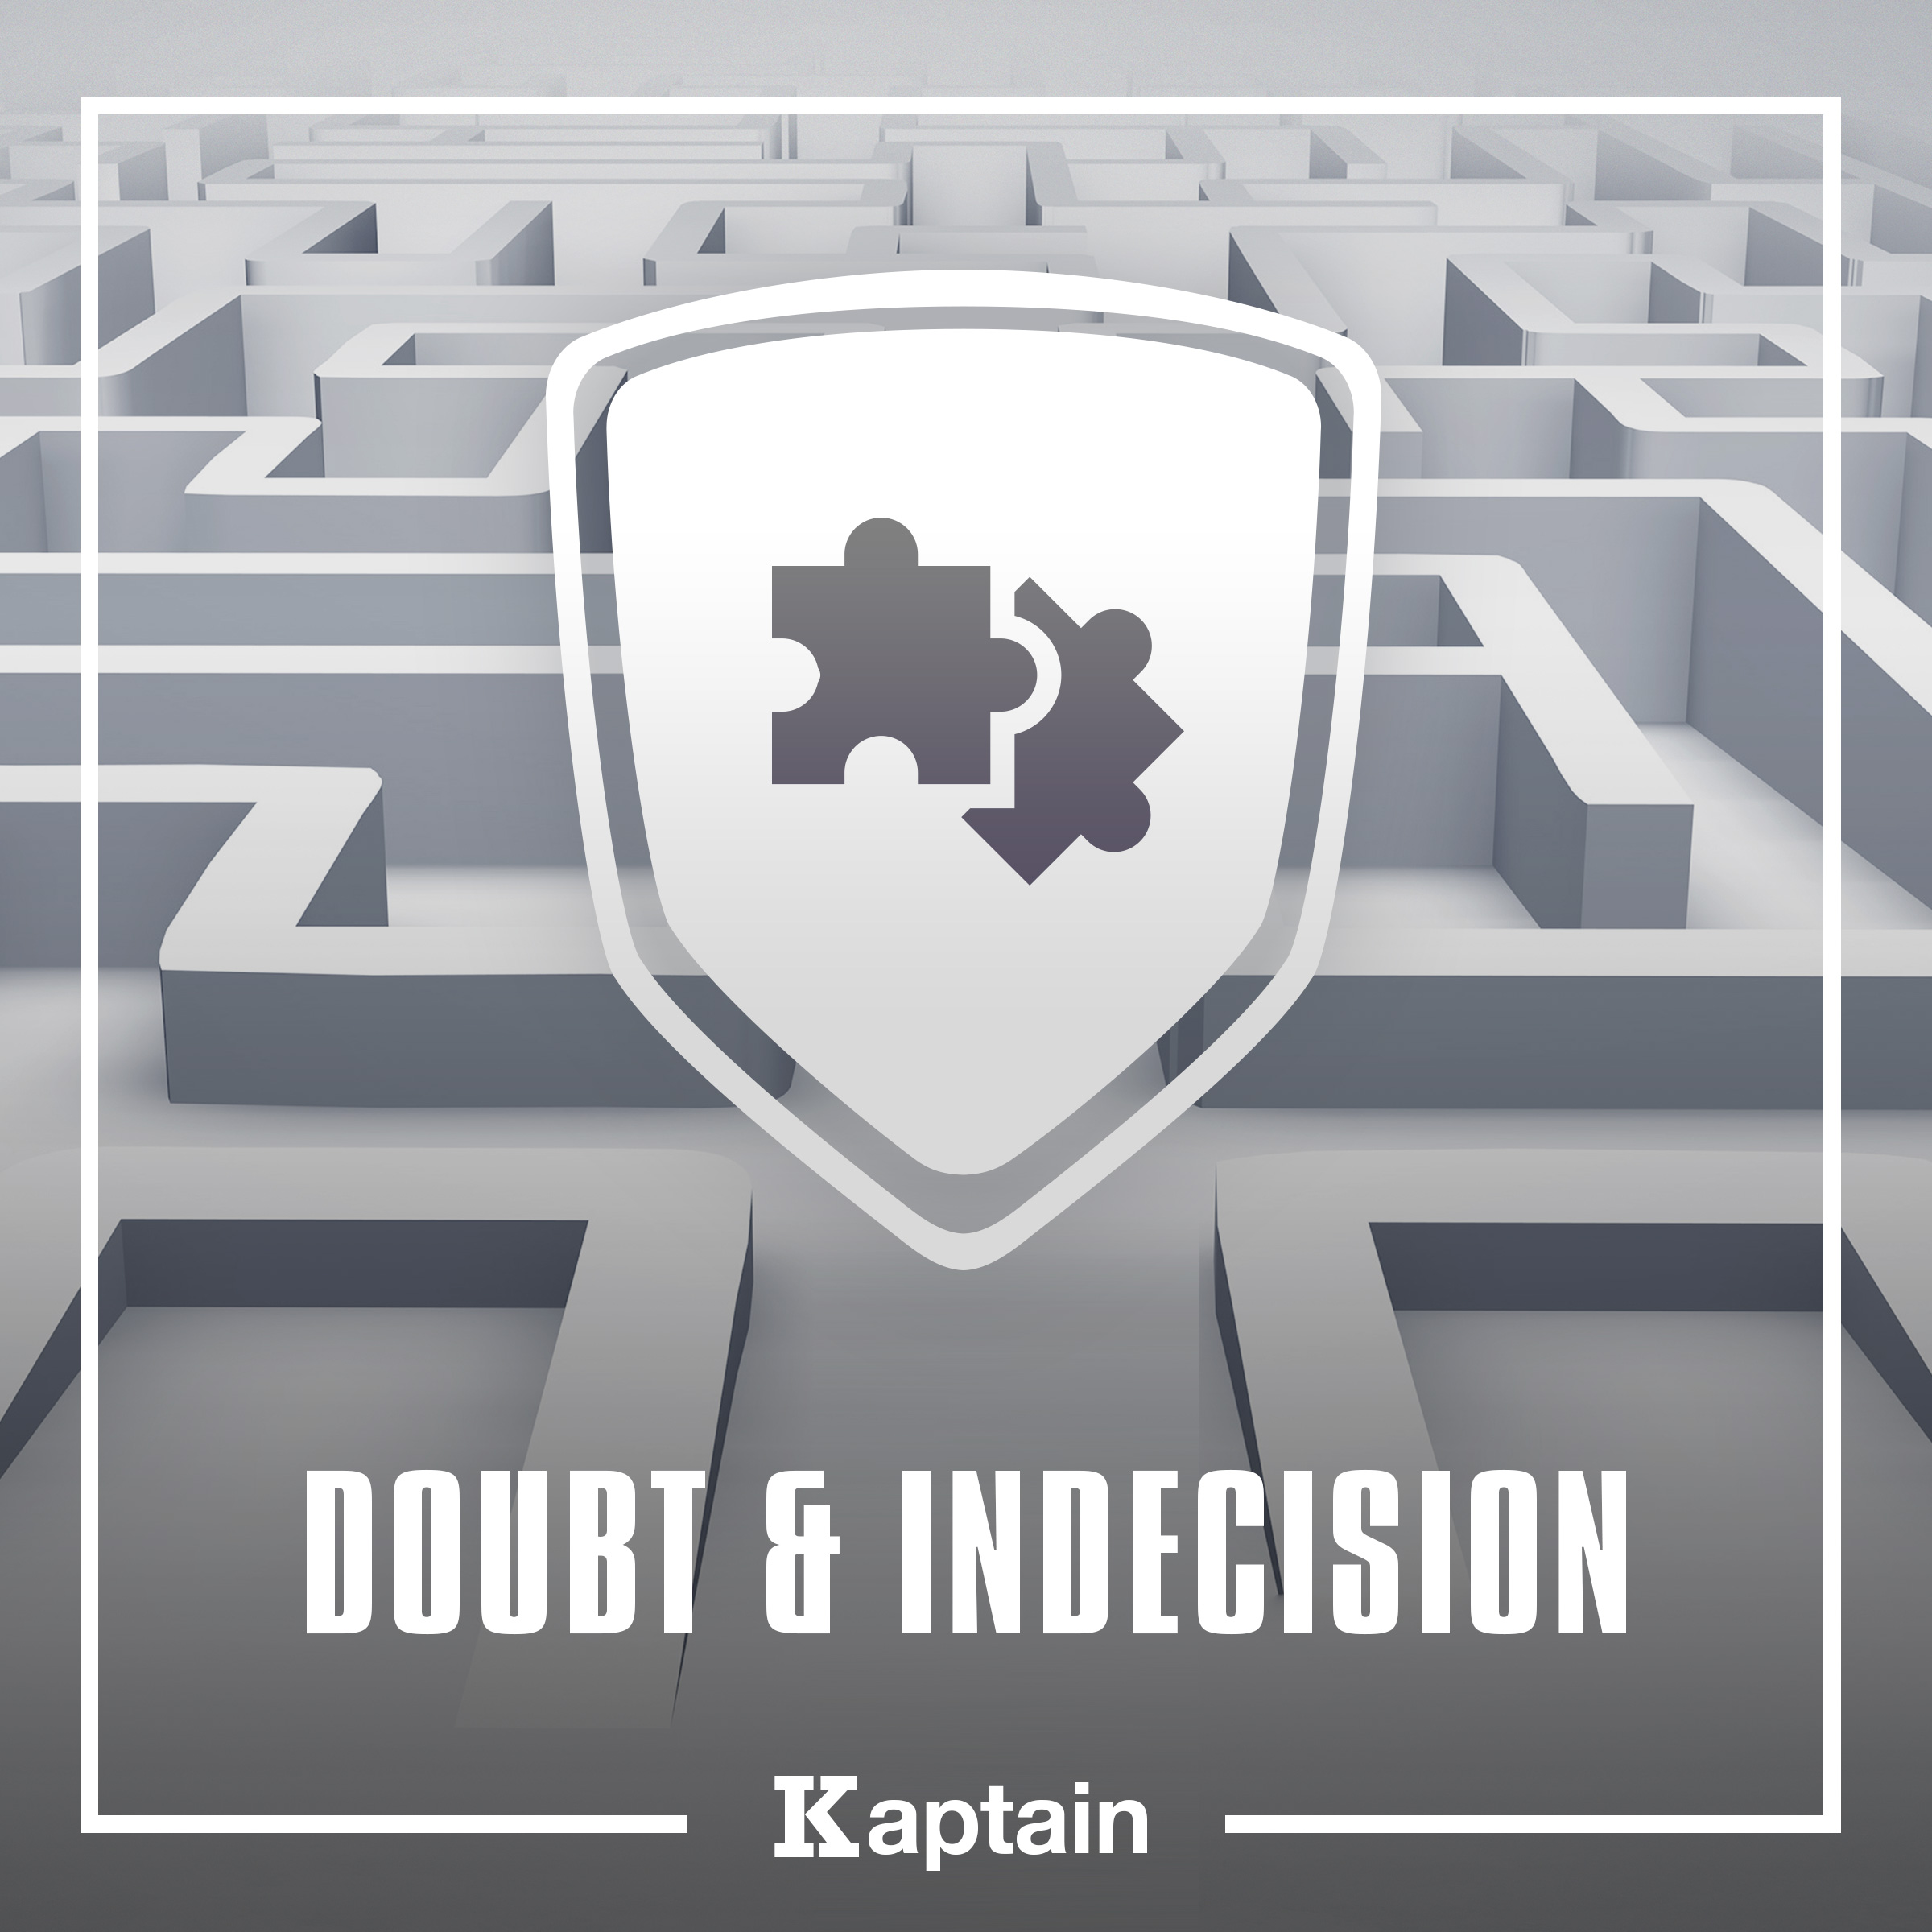 Doubt & Indecision